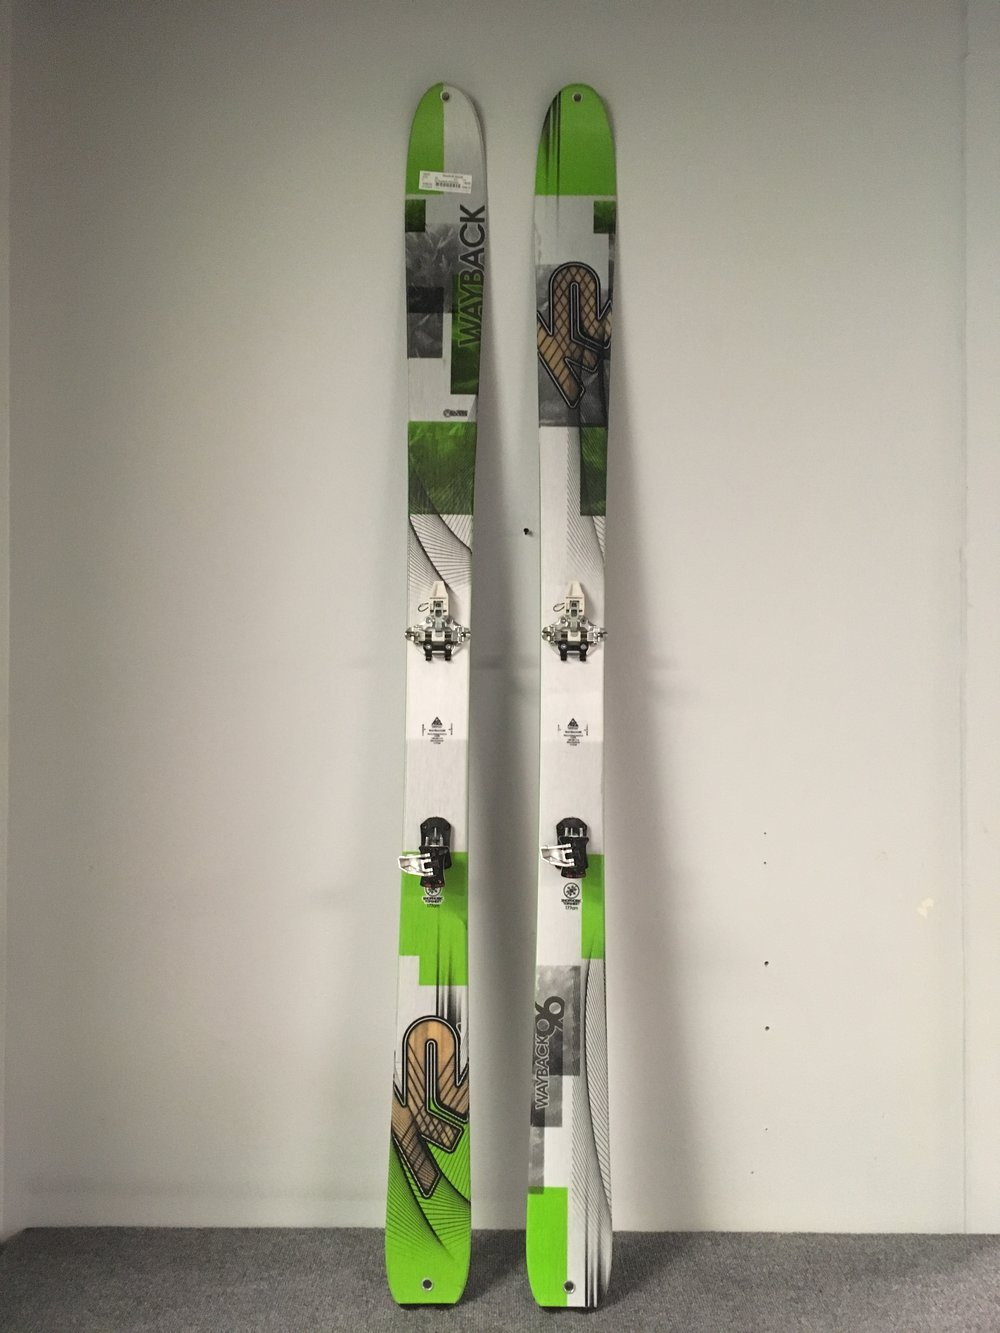 Get ready for spring touring with this lightweight setup! The ski is the K2 Wayback 96 and the binding is Dynafit's TLT Speed Radical. The full setup new would easily cost well over a $1,000 but we can get you skiing for $400! The length is 177.